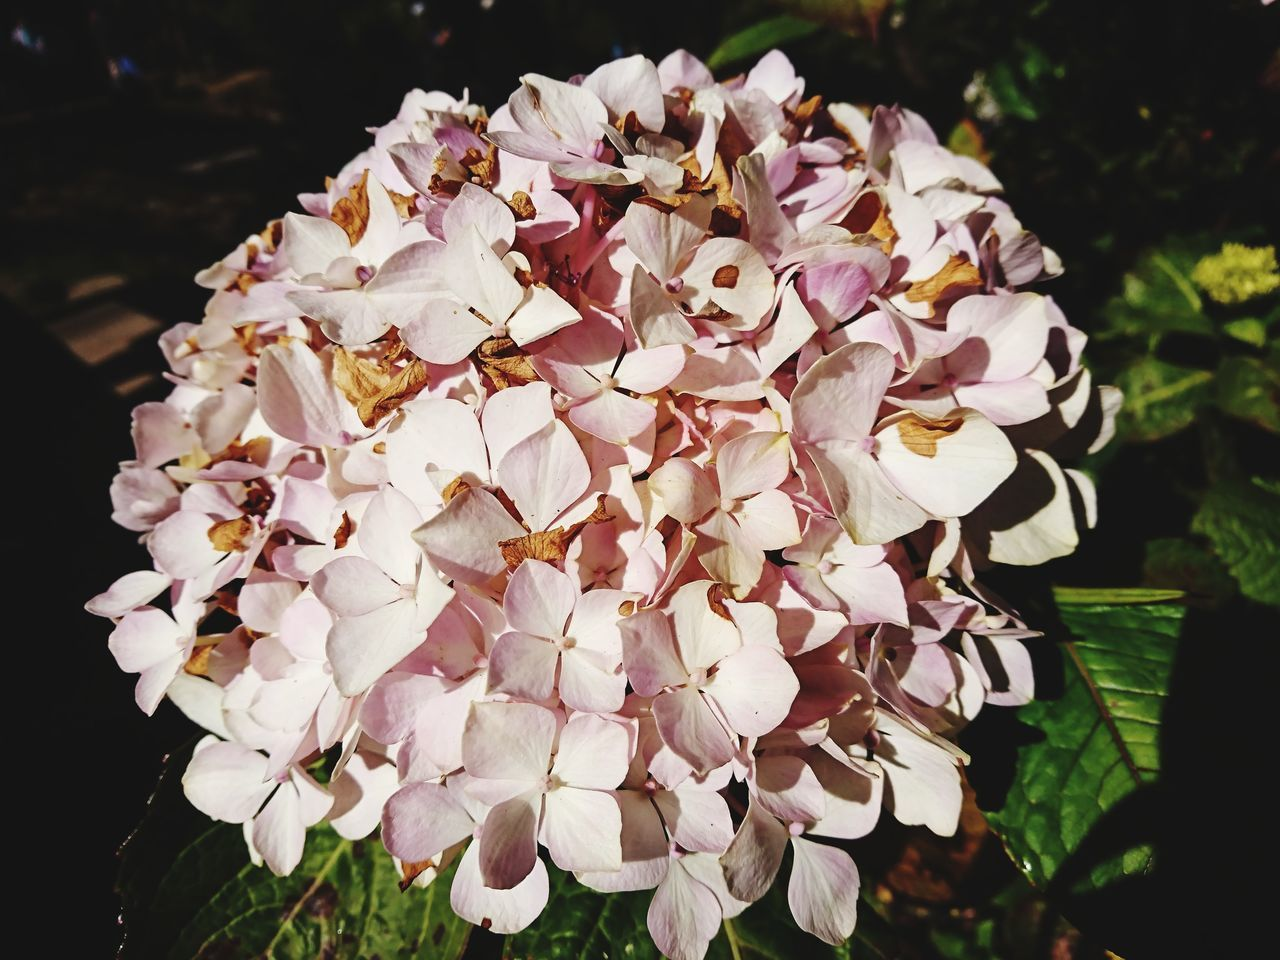 CLOSE-UP OF FRESH WHITE PINK FLOWERS